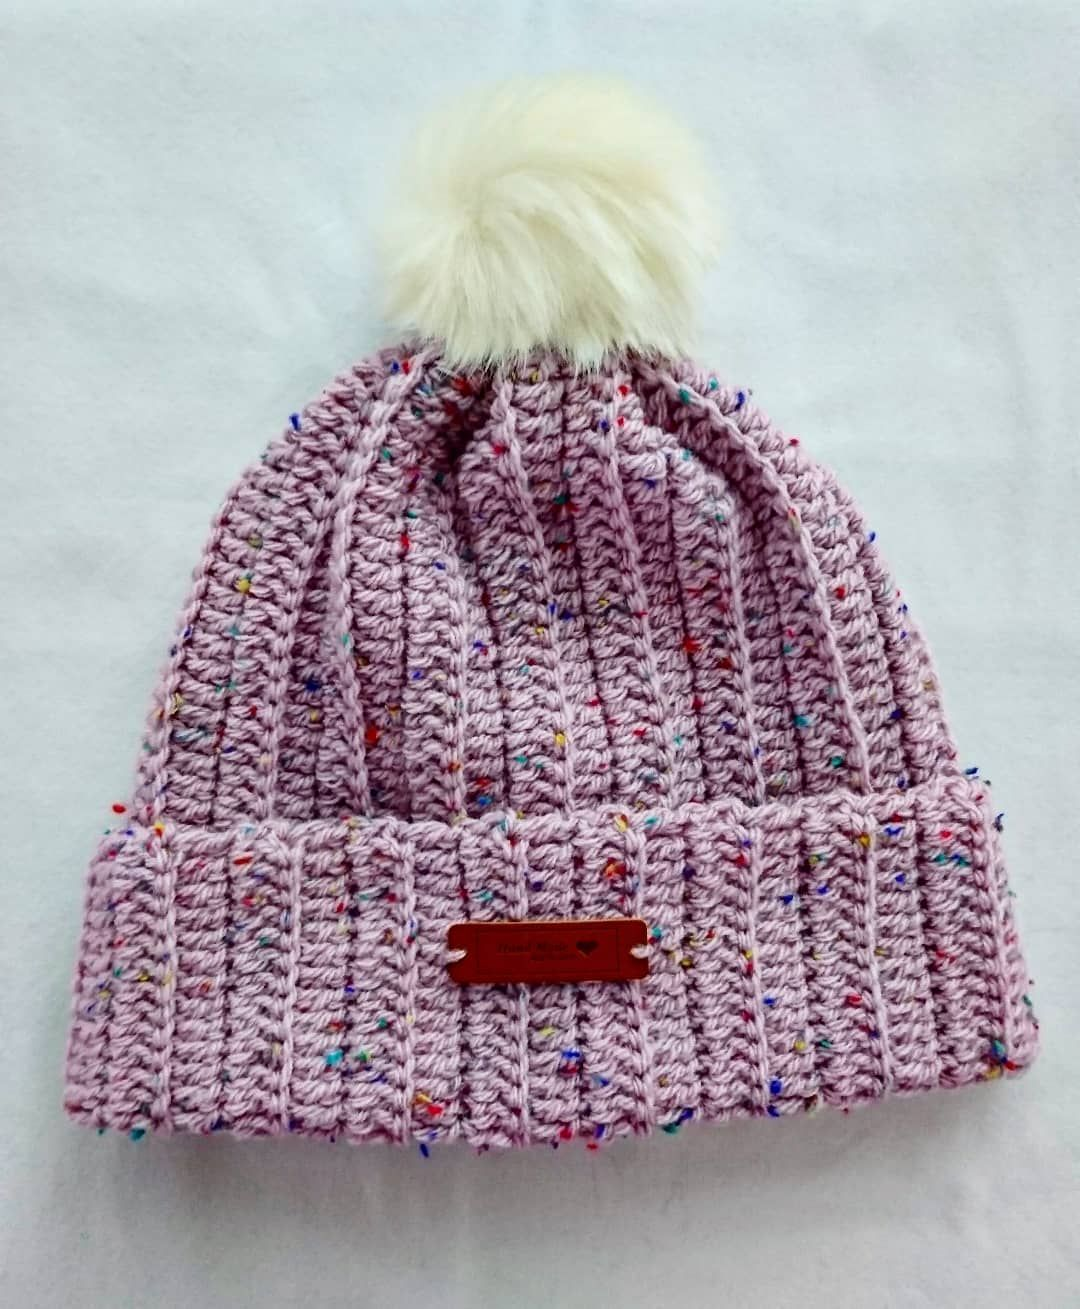 41 Awesome Free Crochet Winter Hat Patterns Ideas Images for 2019 - Page 37  of 41 - Ladiesways.com Women Hairstyles Blog! e0ff4a3e5323